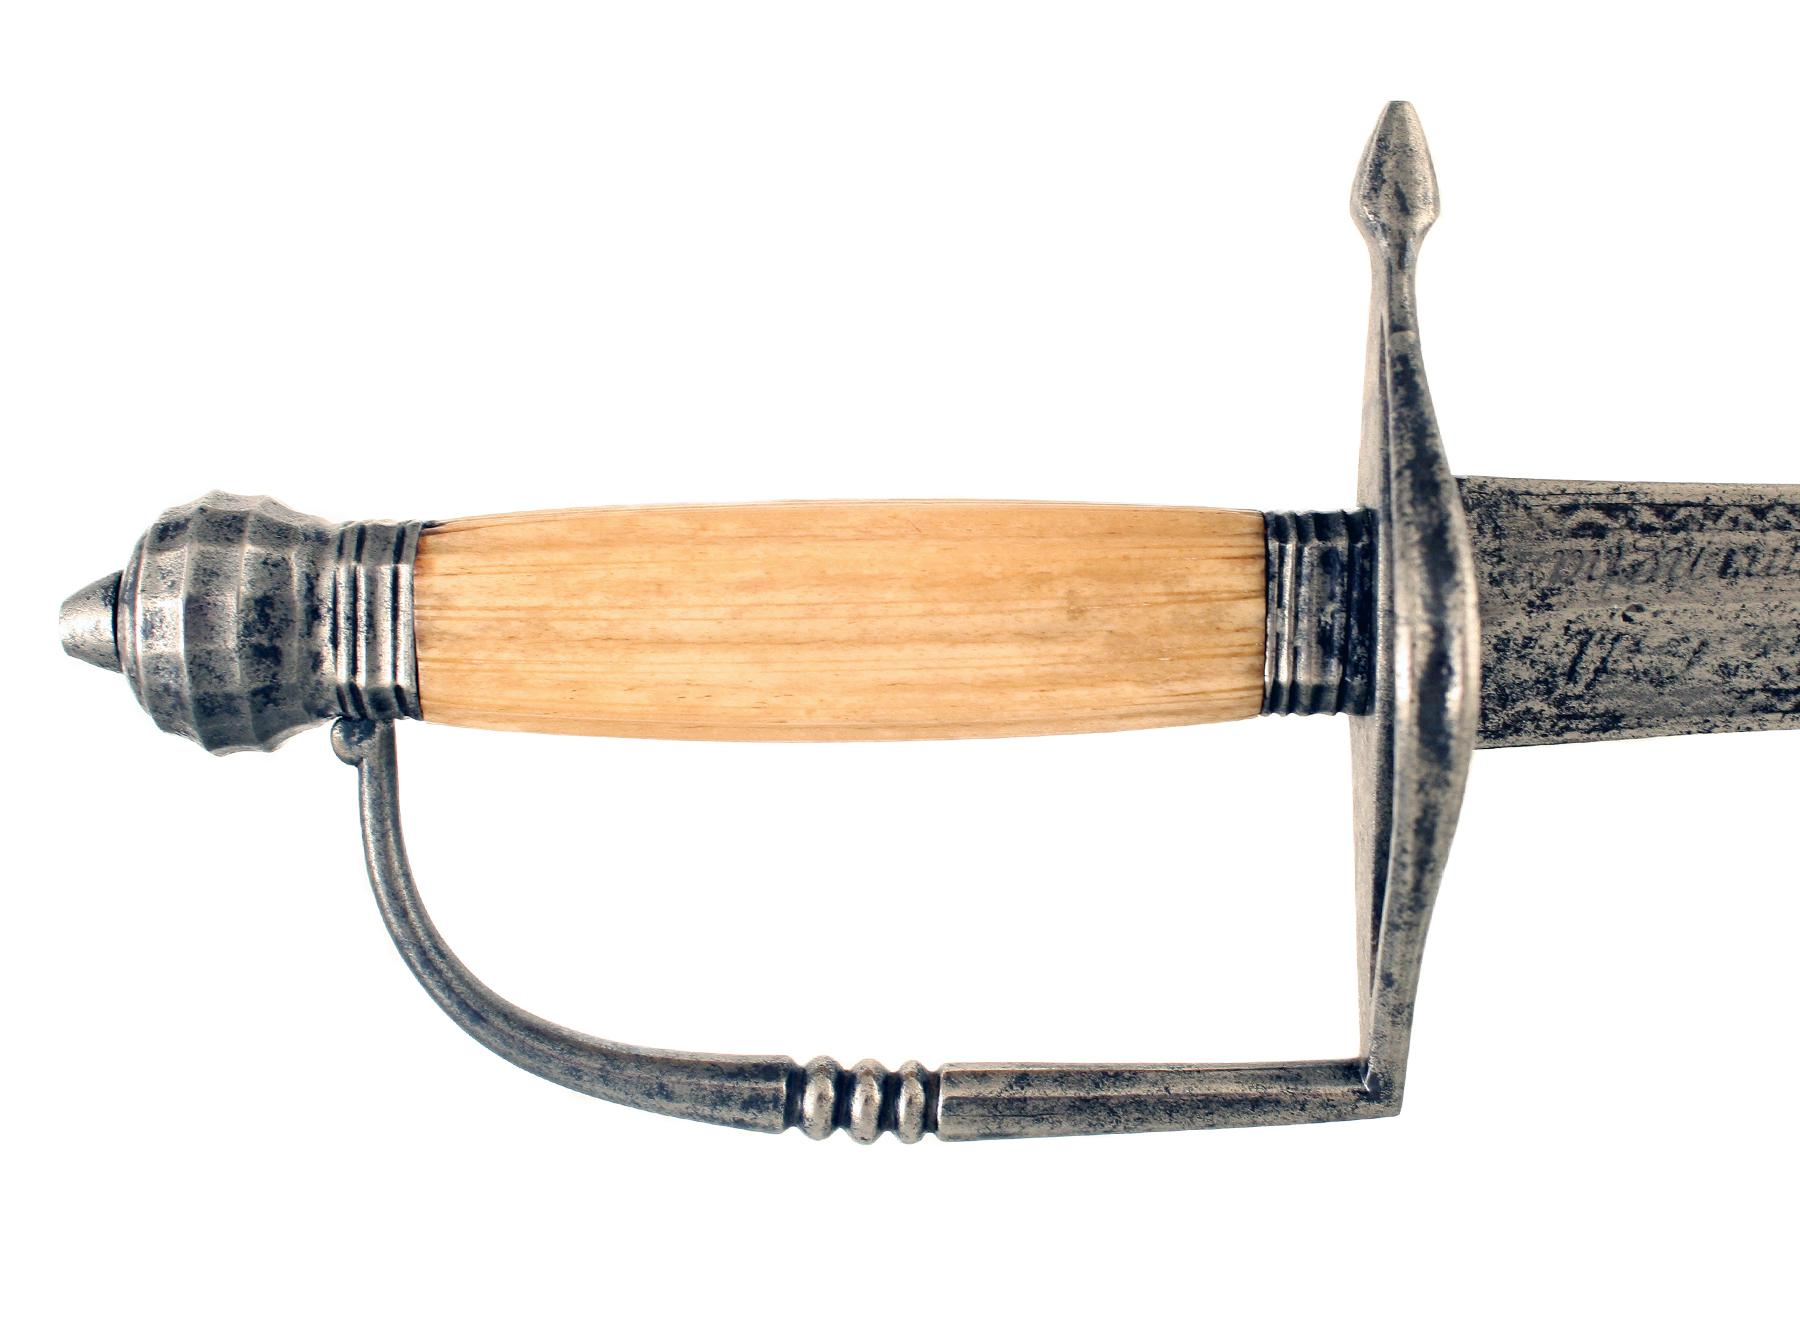 A Spadroon Hilted Sword